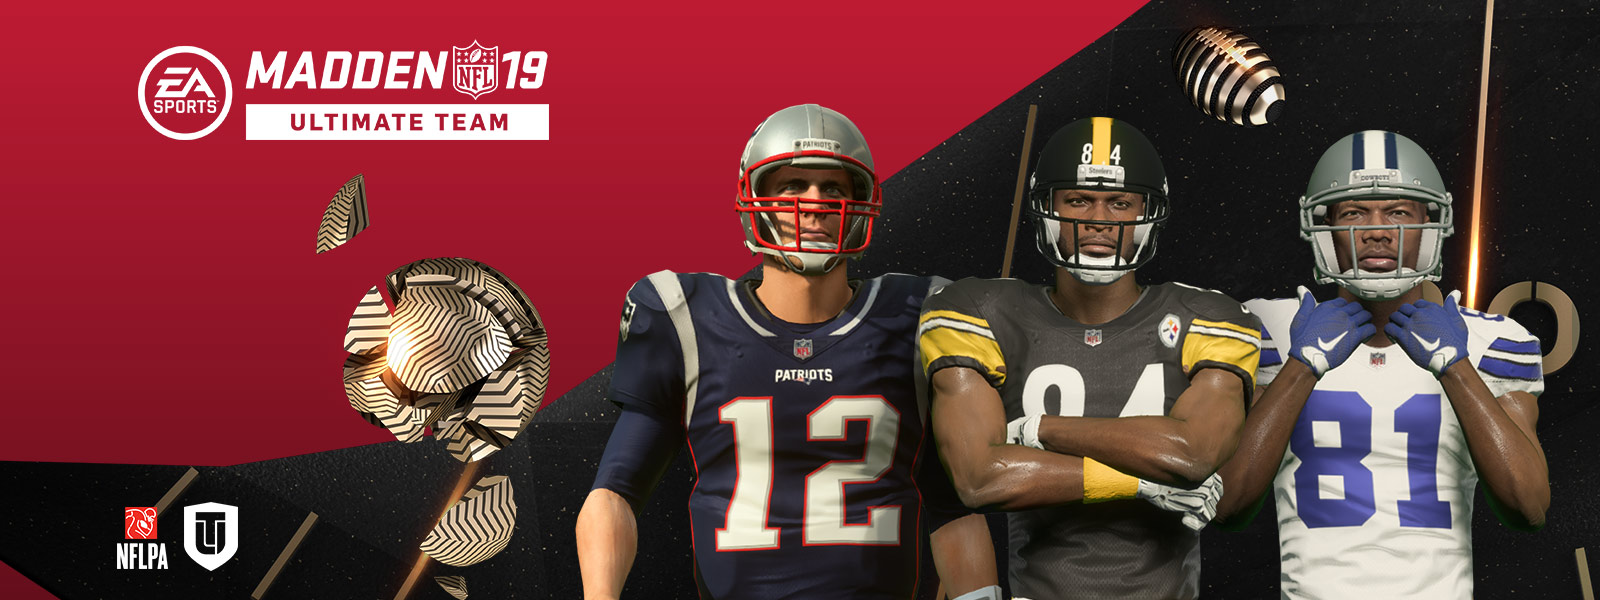 Madden NFL 19 Ultimate Team, Tom Brady, Antonio Brown og Terrell Owens sett forfra